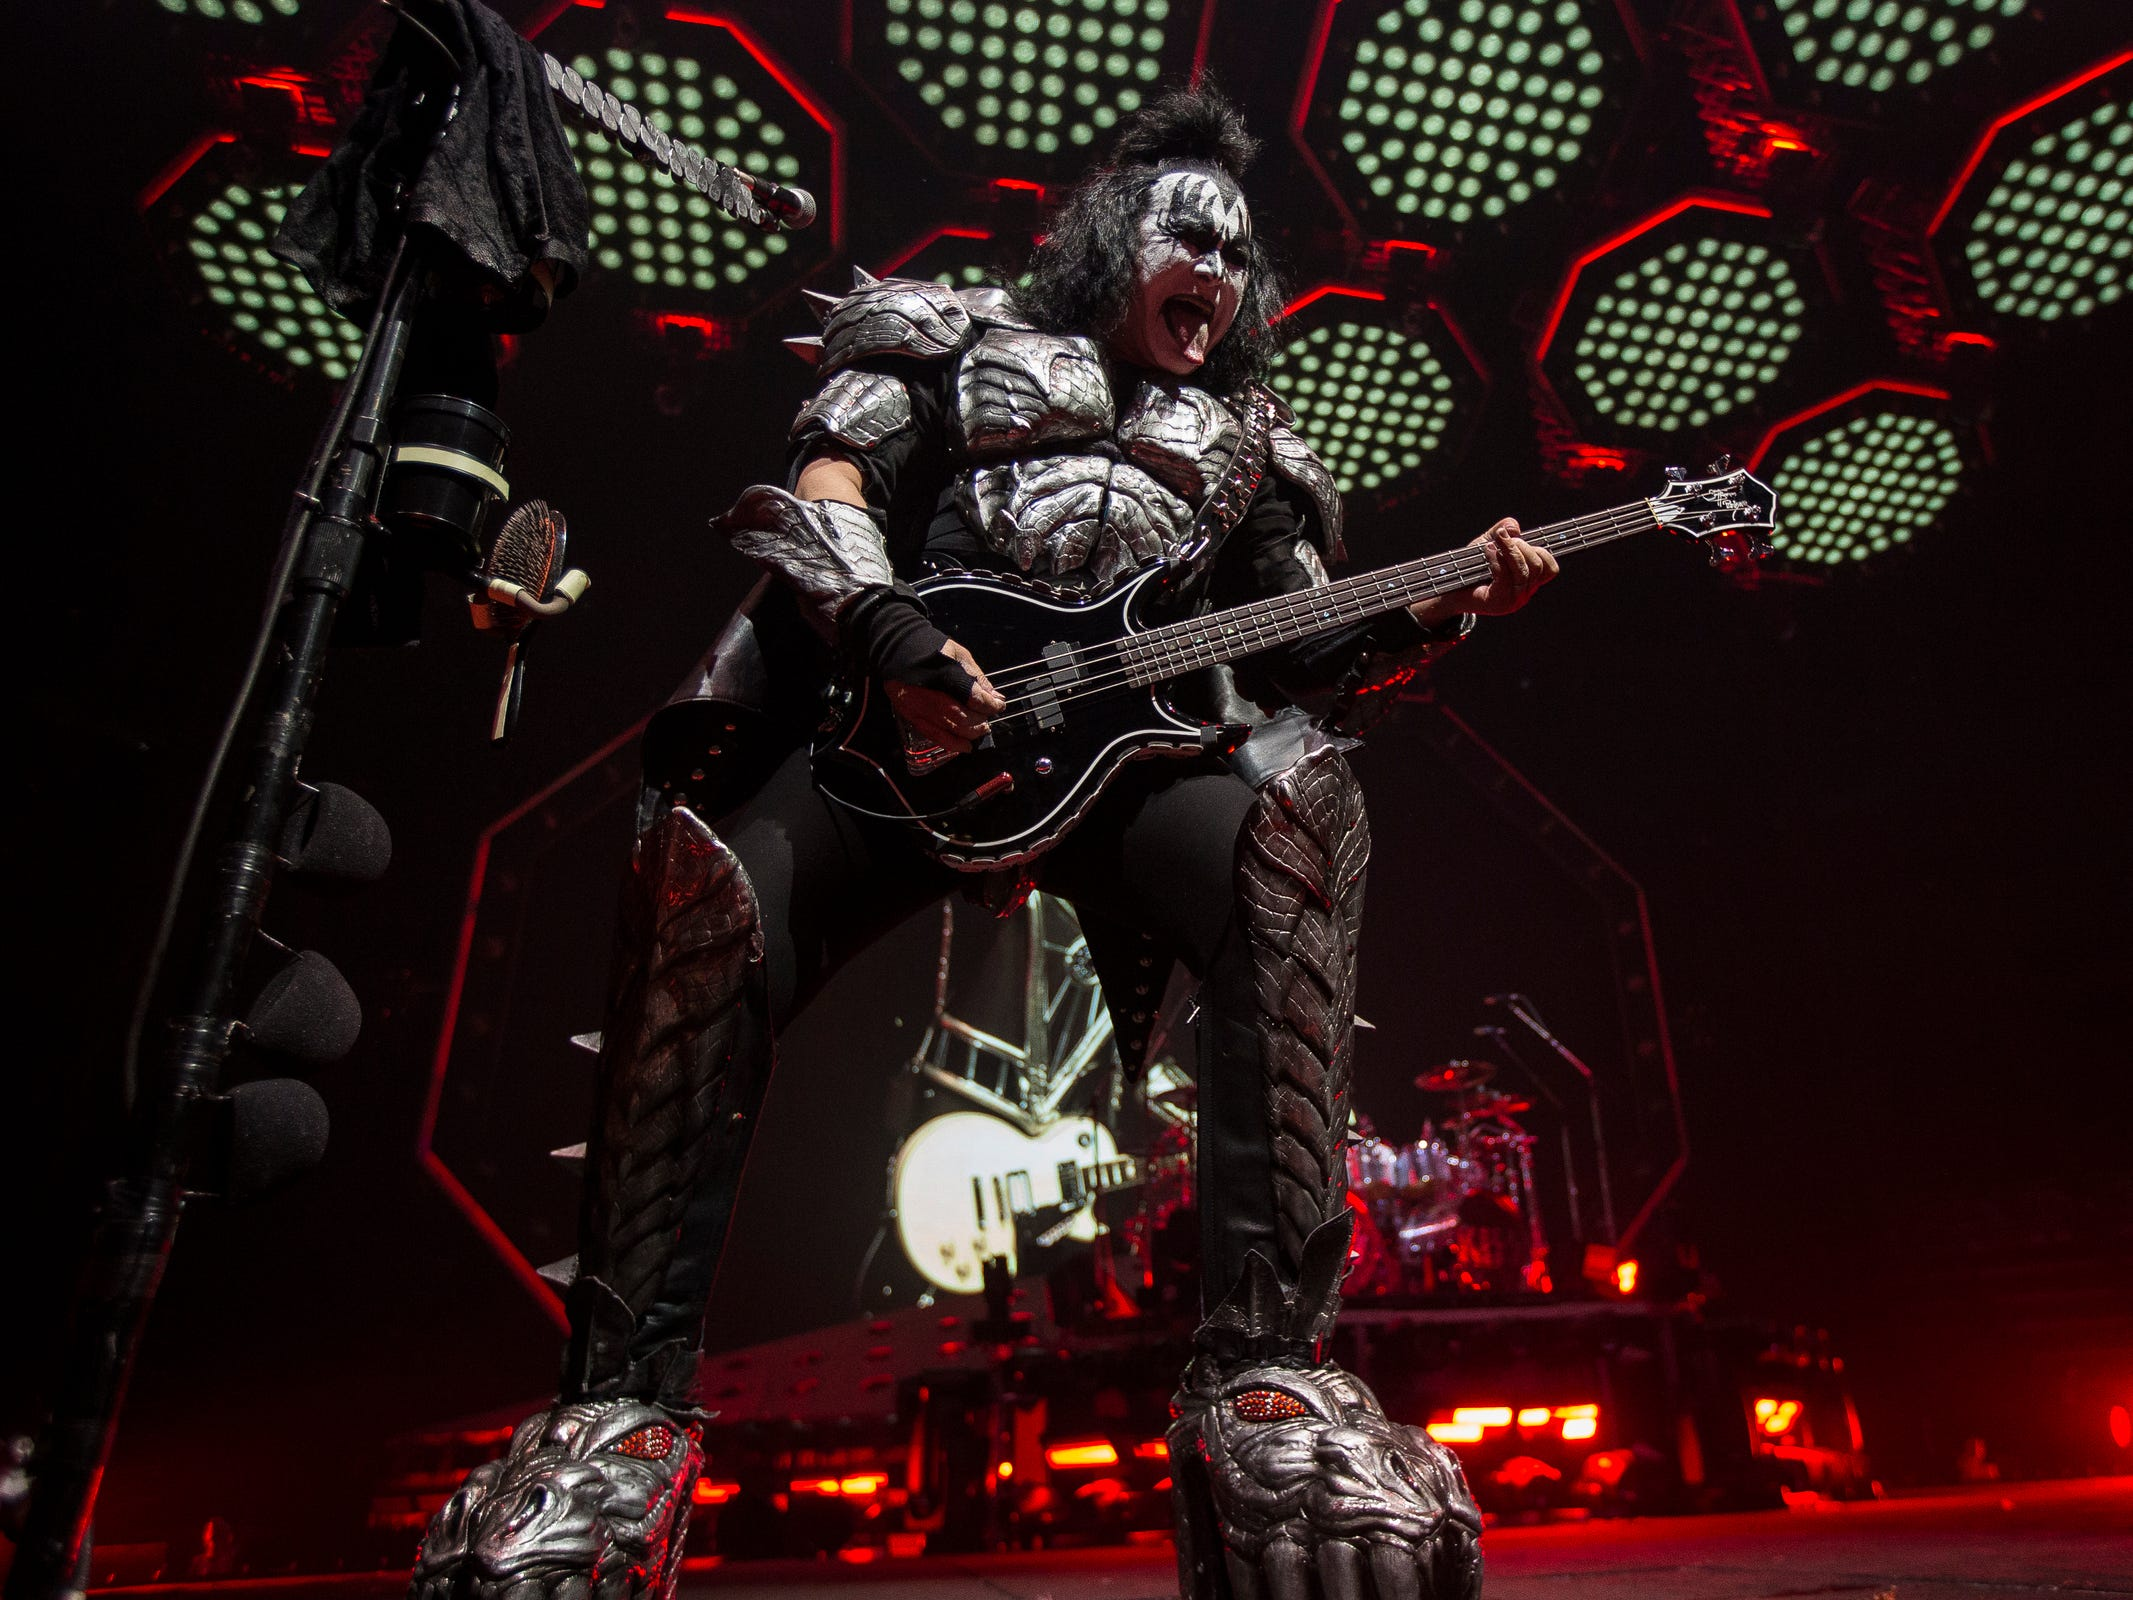 KISS' Gene Simmons performs their End of The Road world tour at the Little Caesars Arena in Detroit, Wednesday, March 13, 2019.